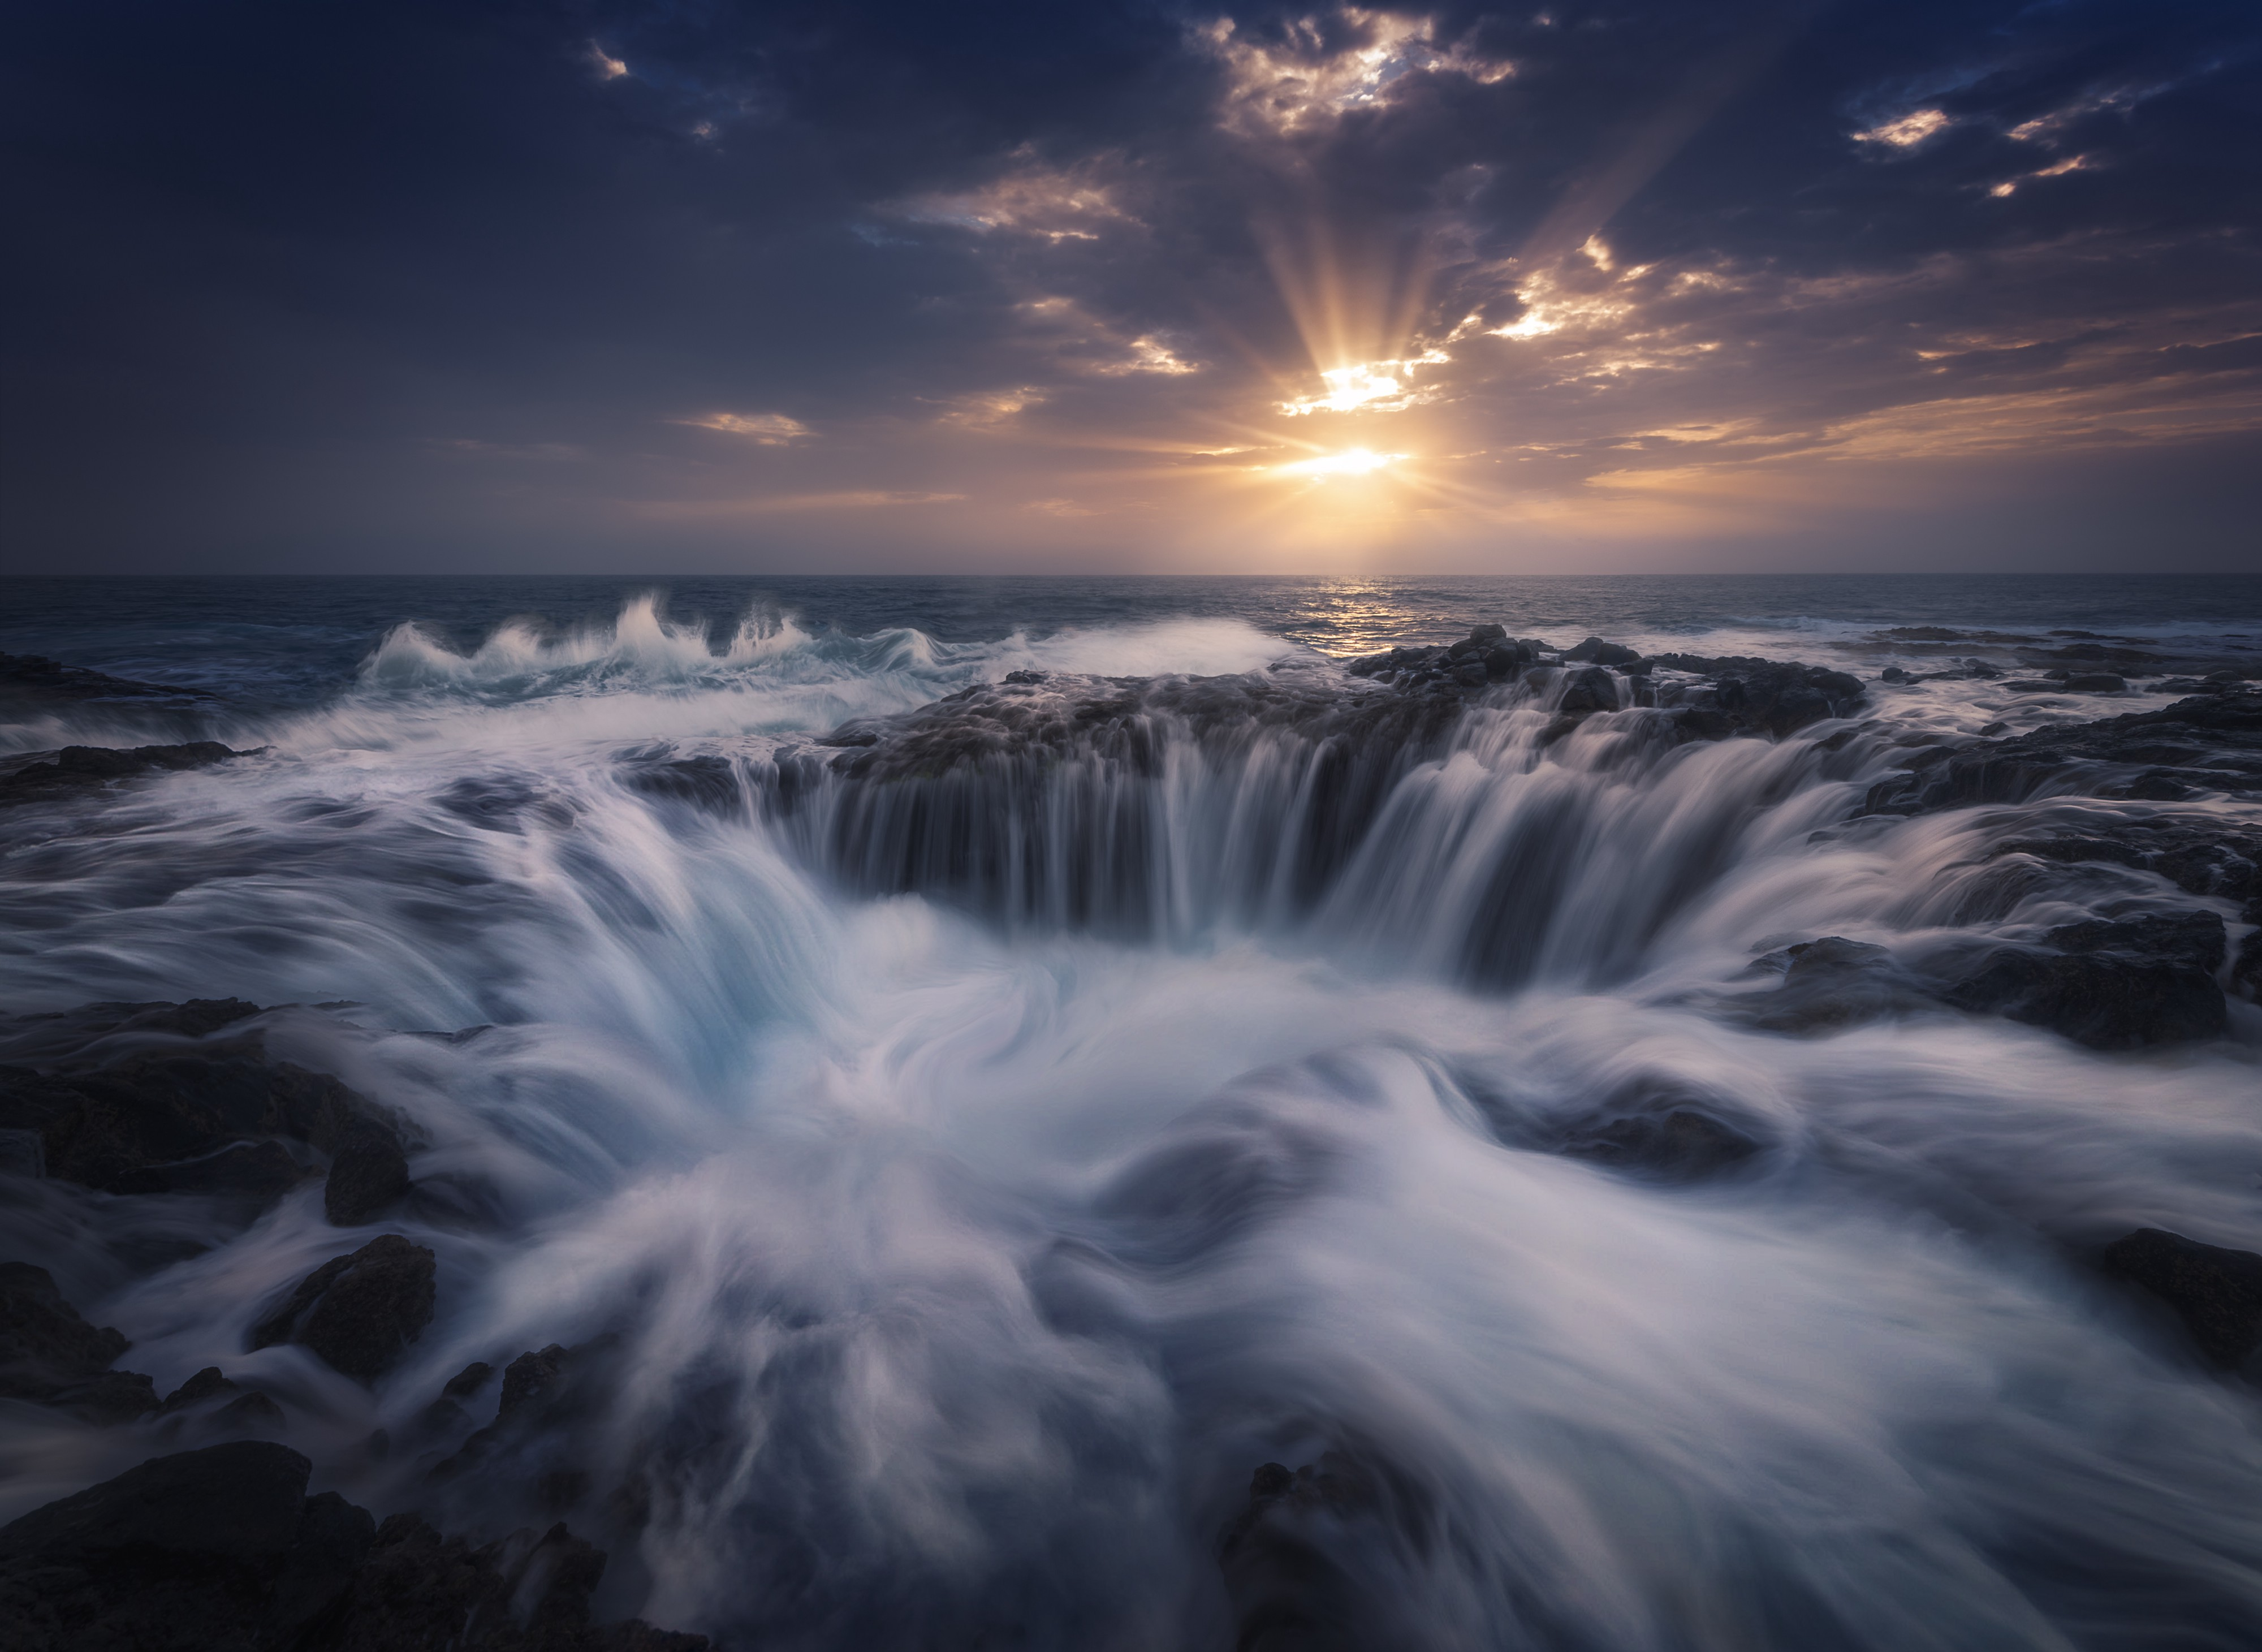 A seascape shows waves crashing in on eachother with white foam as the sun shines through some clouds in the background